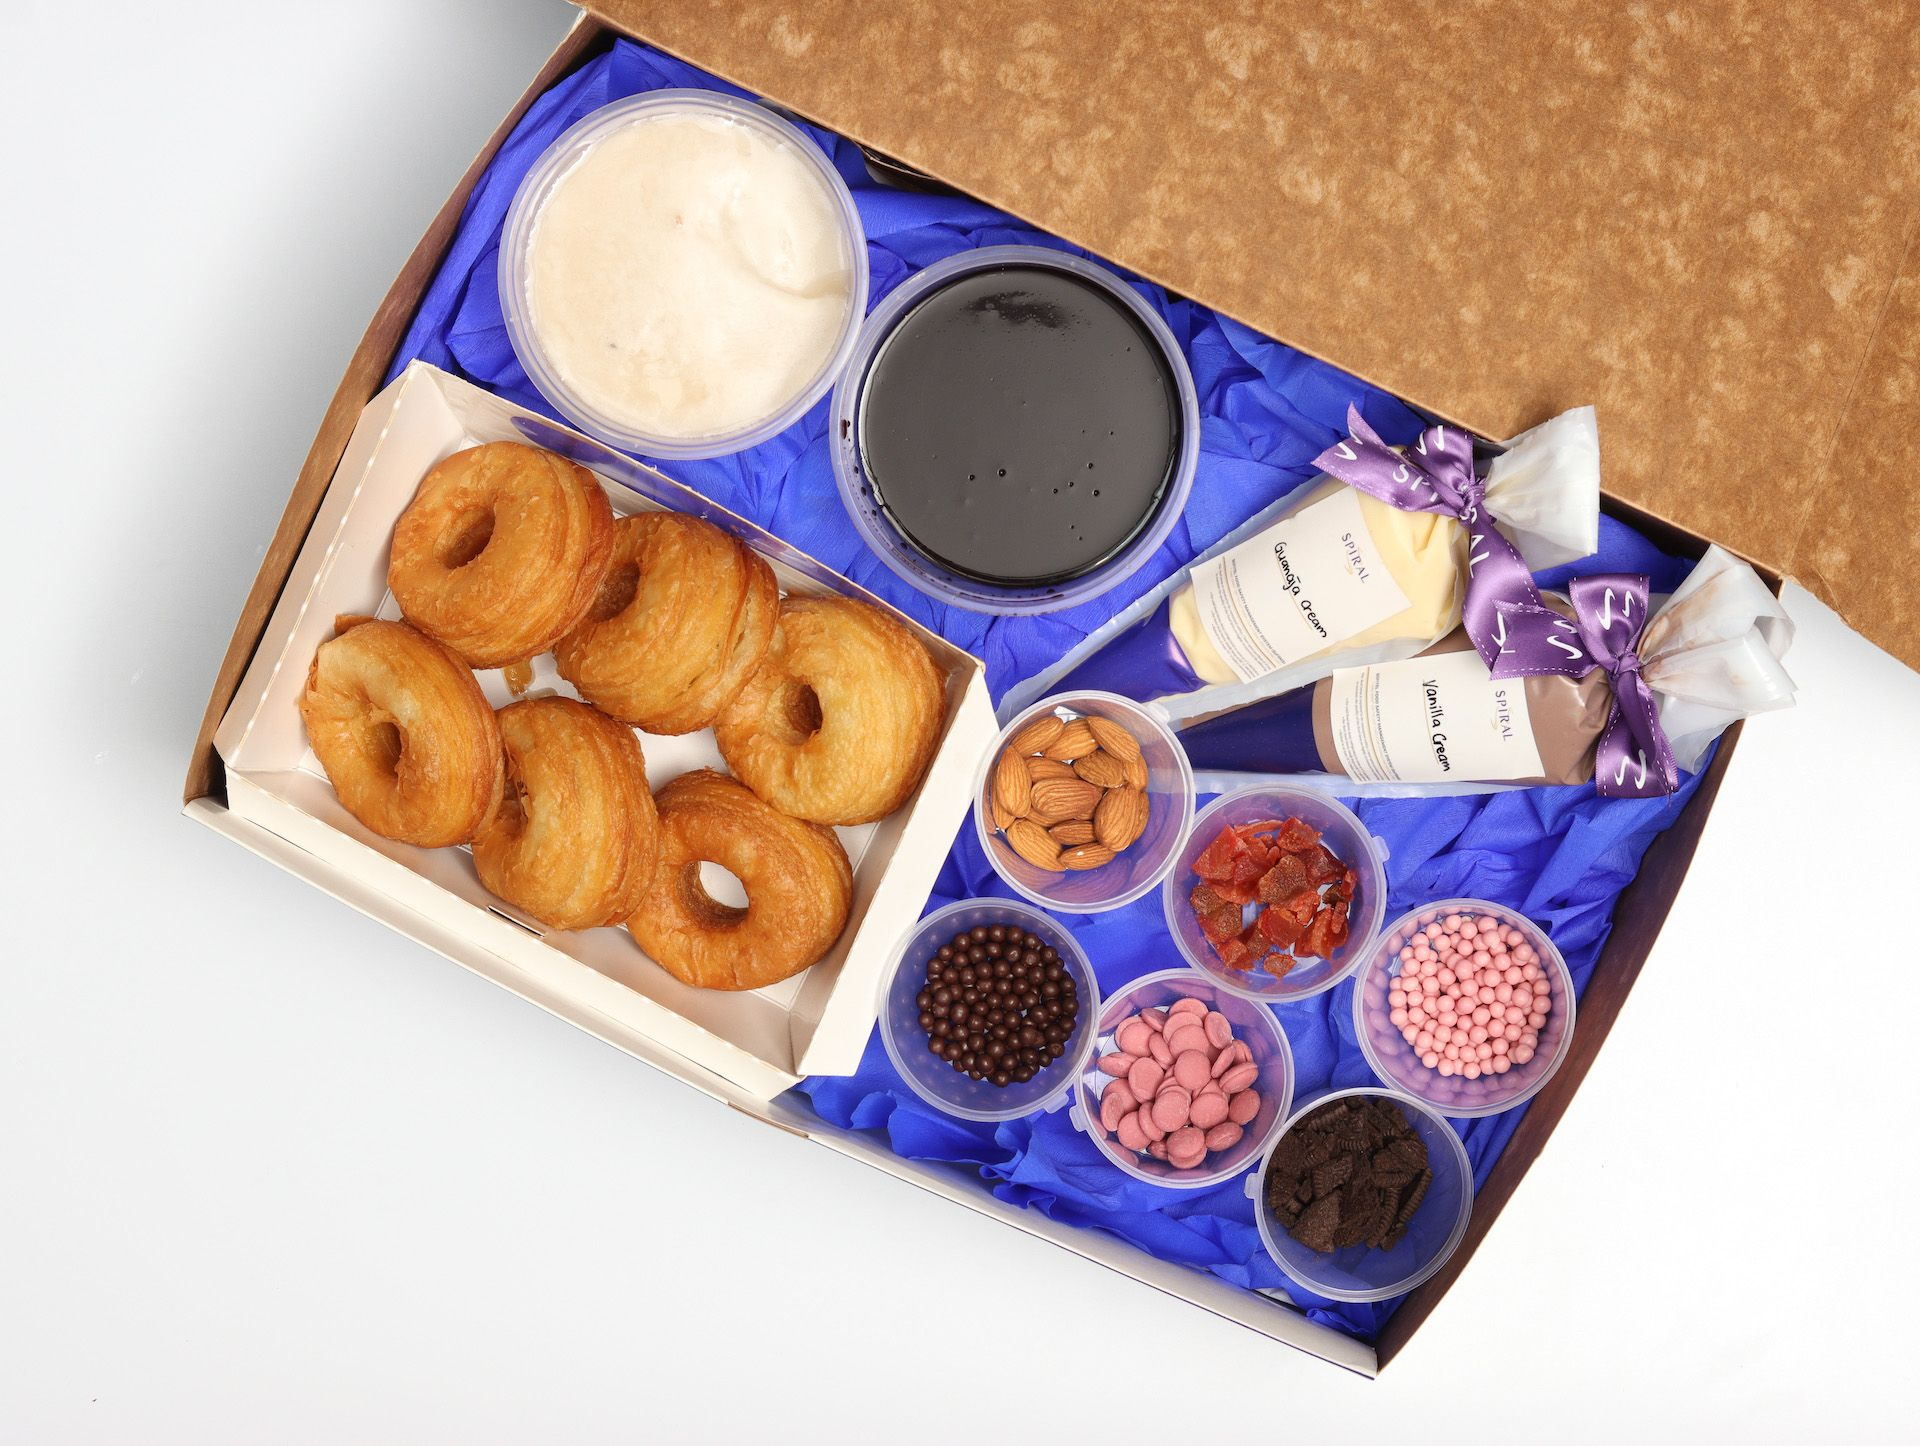 Design your own cronuts